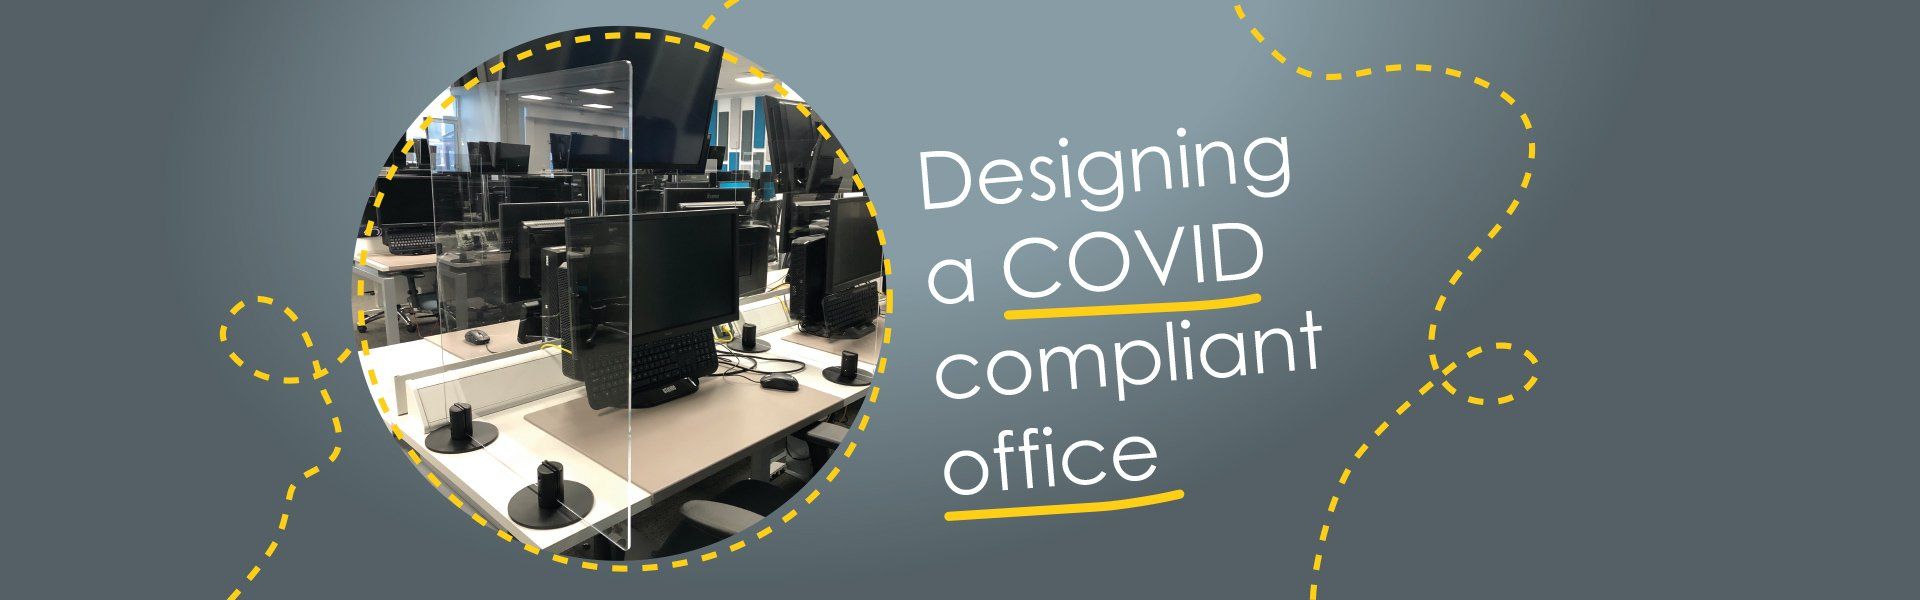 Designing a covid compliant office